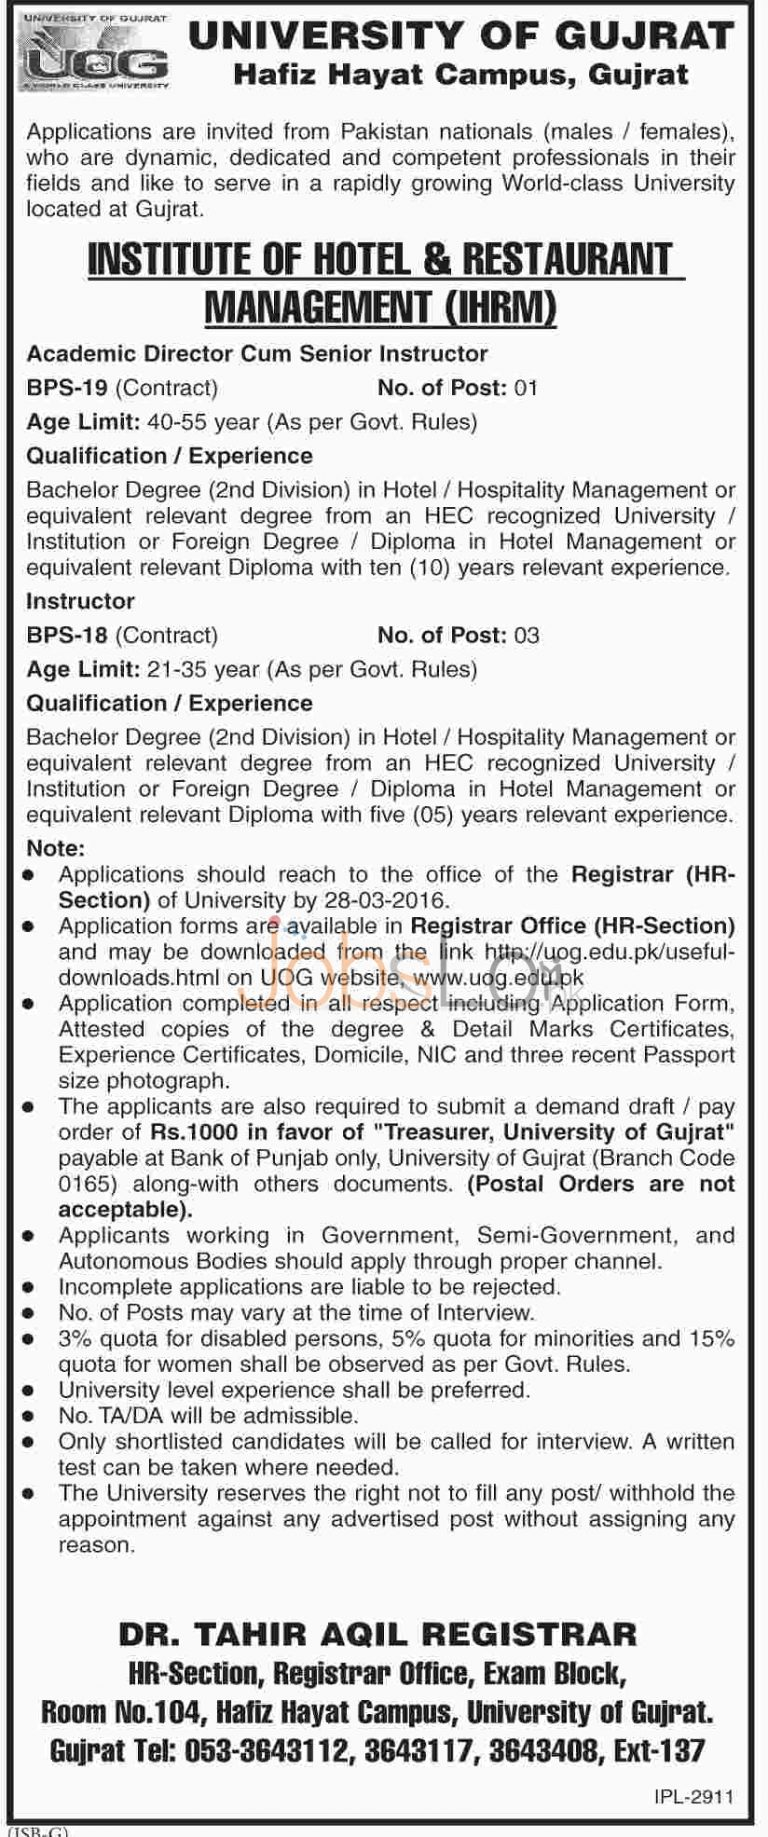 University of Gujrat Jobs 2016 for Academic Director & Instructor Latest